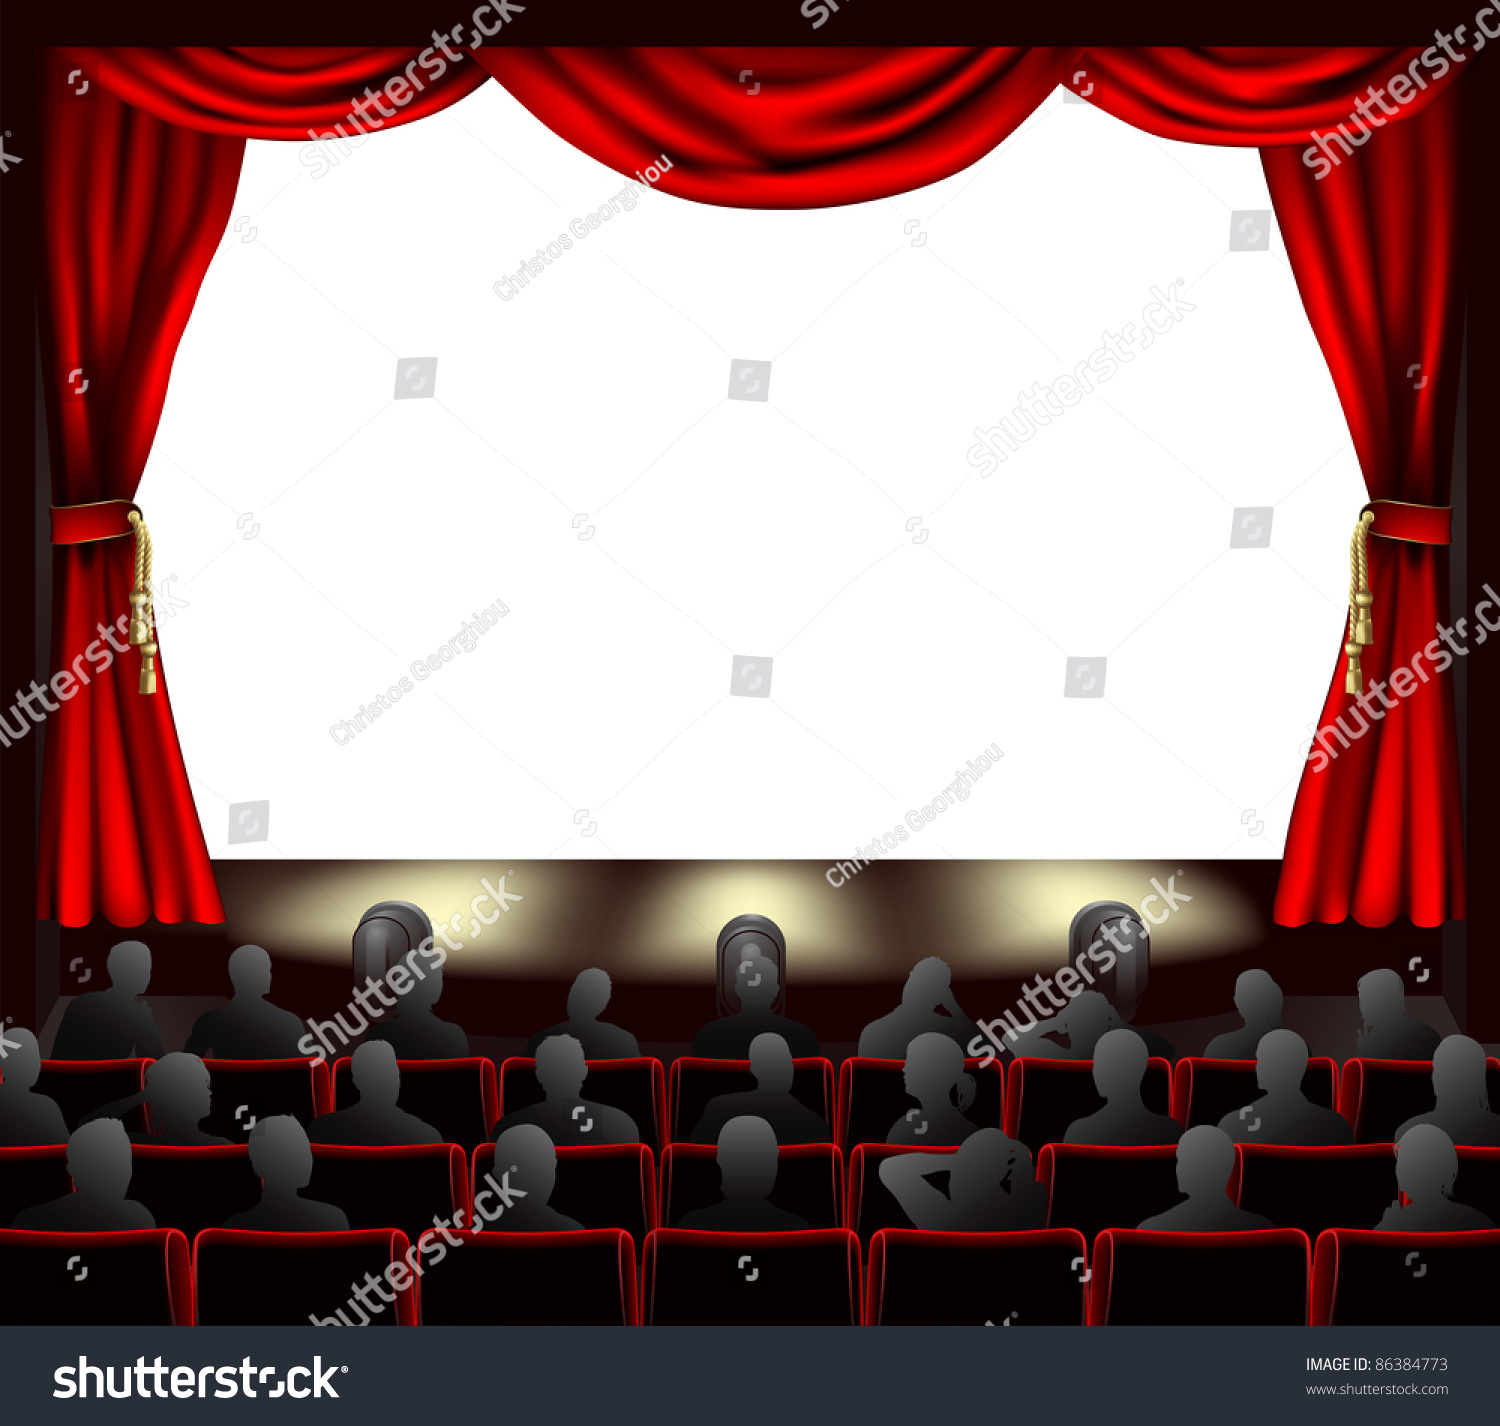 Cinema with curtains and audience space to place anything on stage